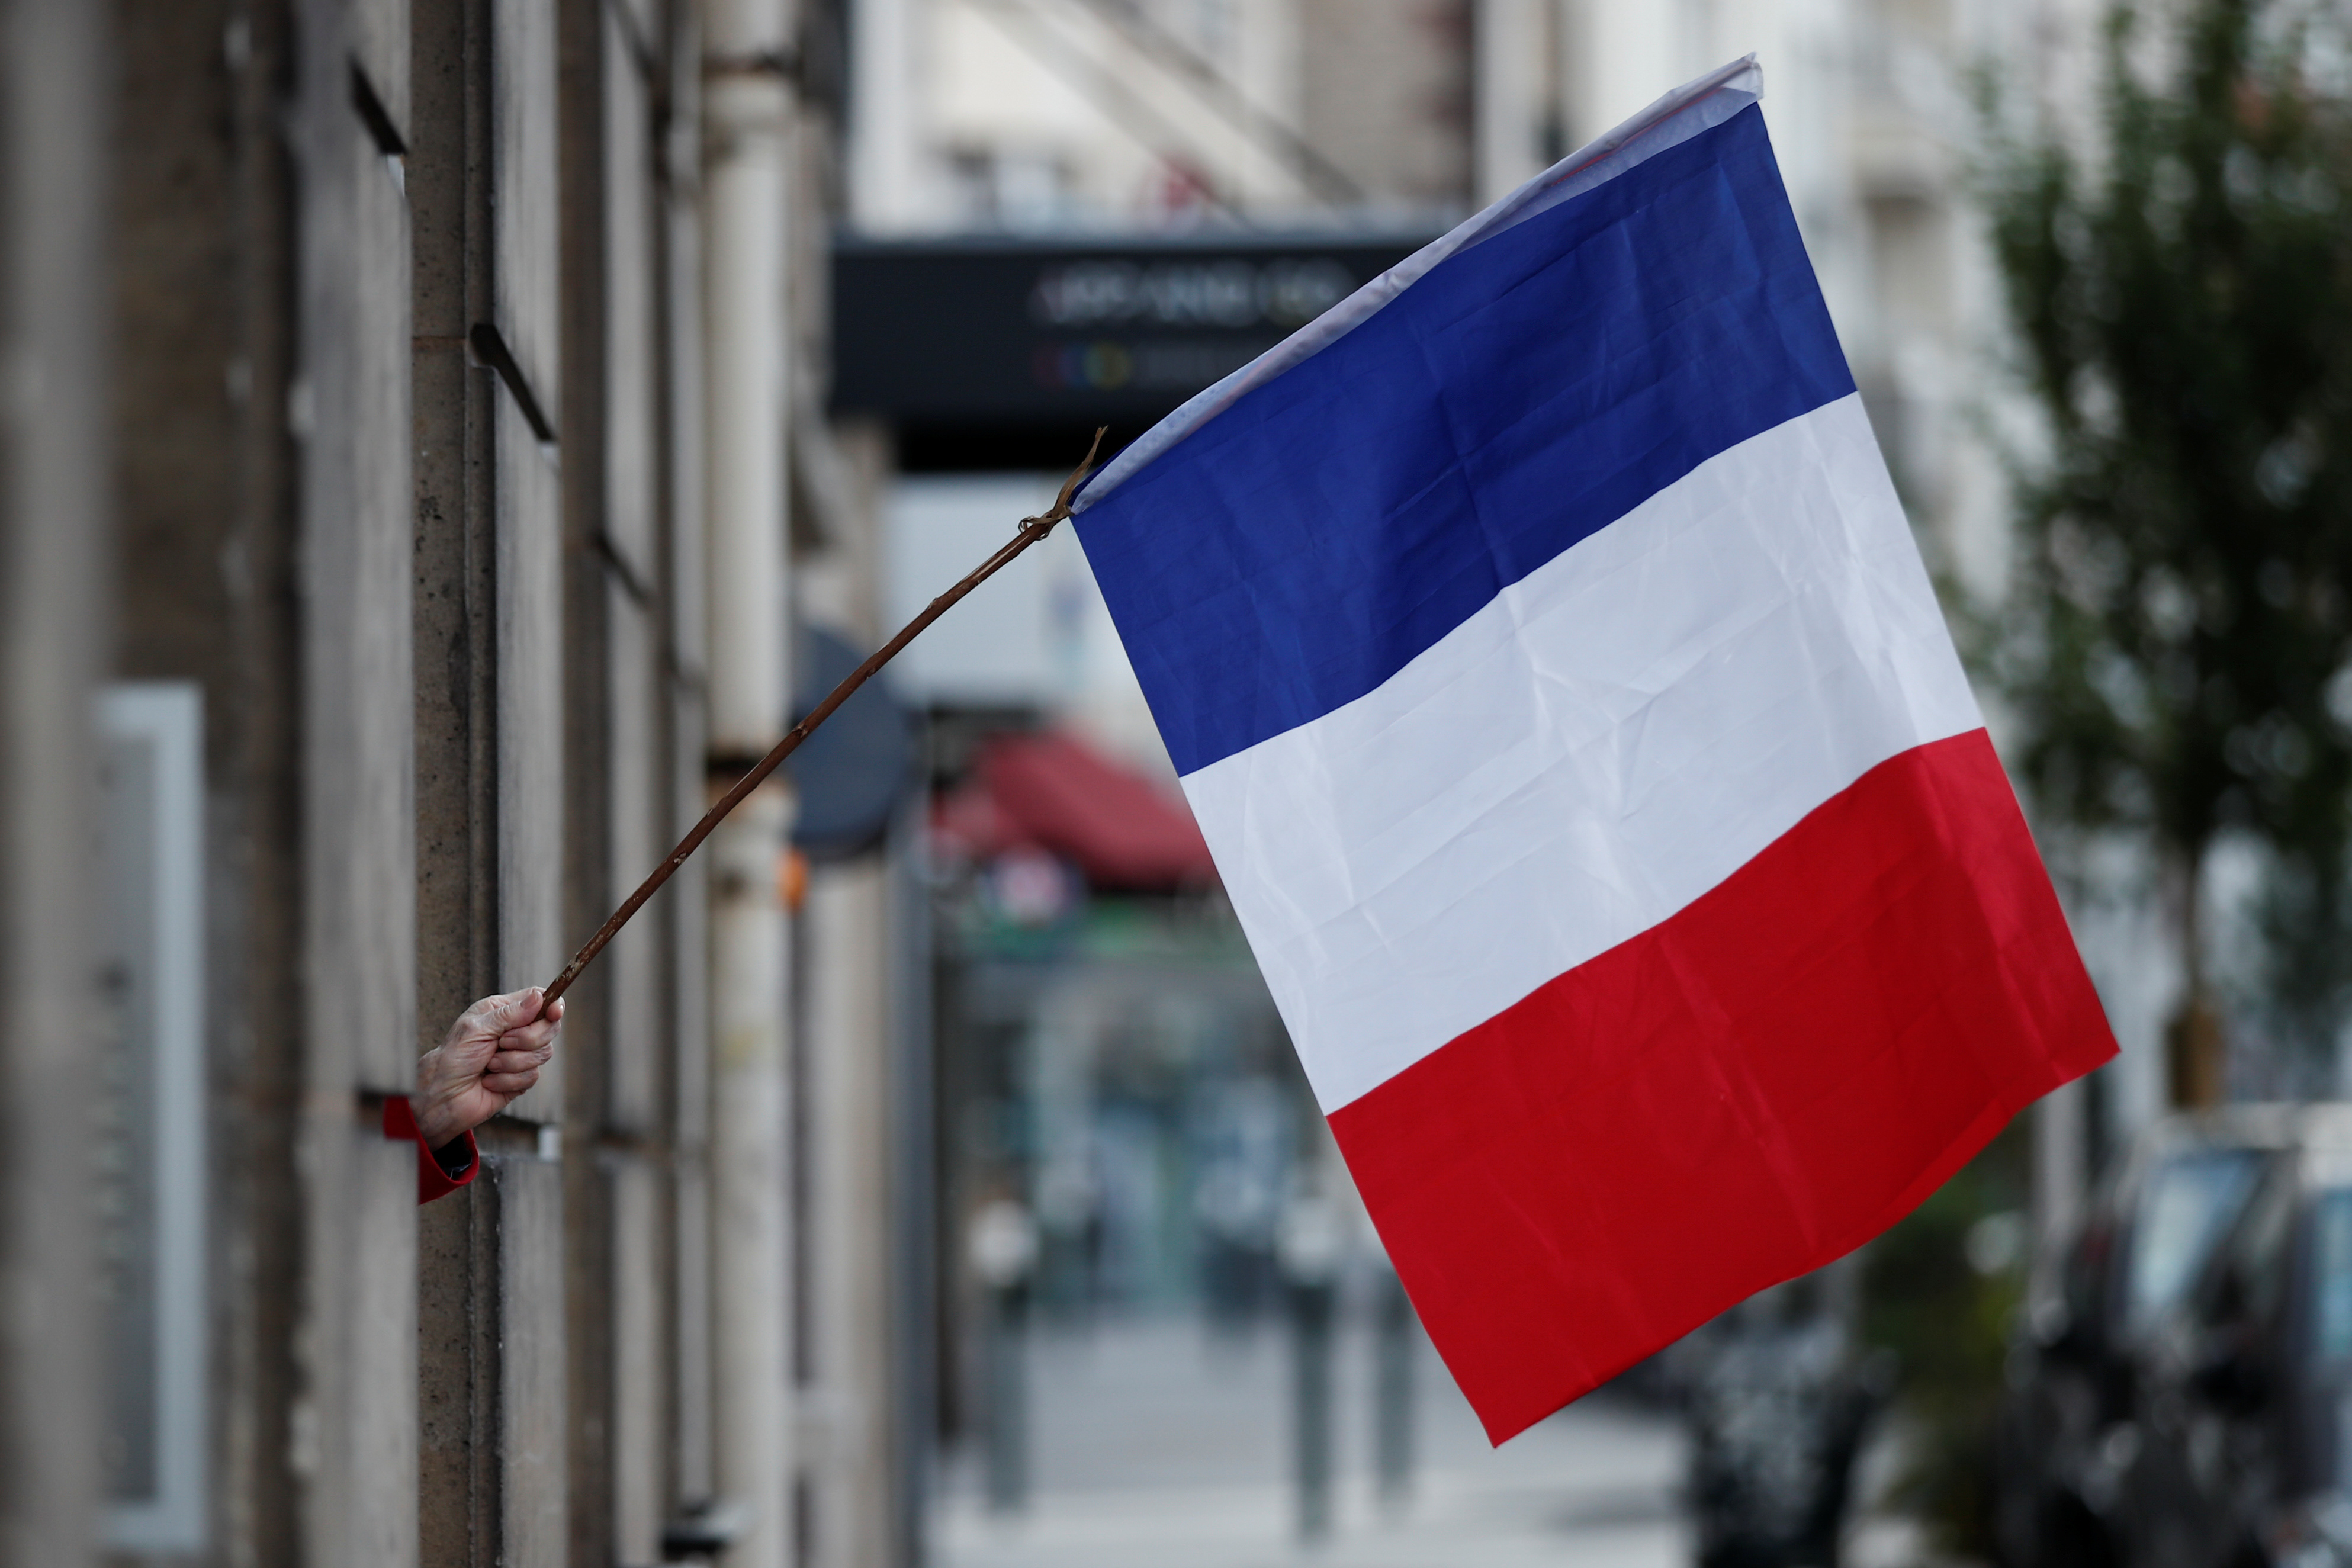 A woman waves a French flag from a window to support healthcare workers amid the coronavirus disease (COVID-19) outbreak in Saint-Mande, near Paris, France May 5 2020.